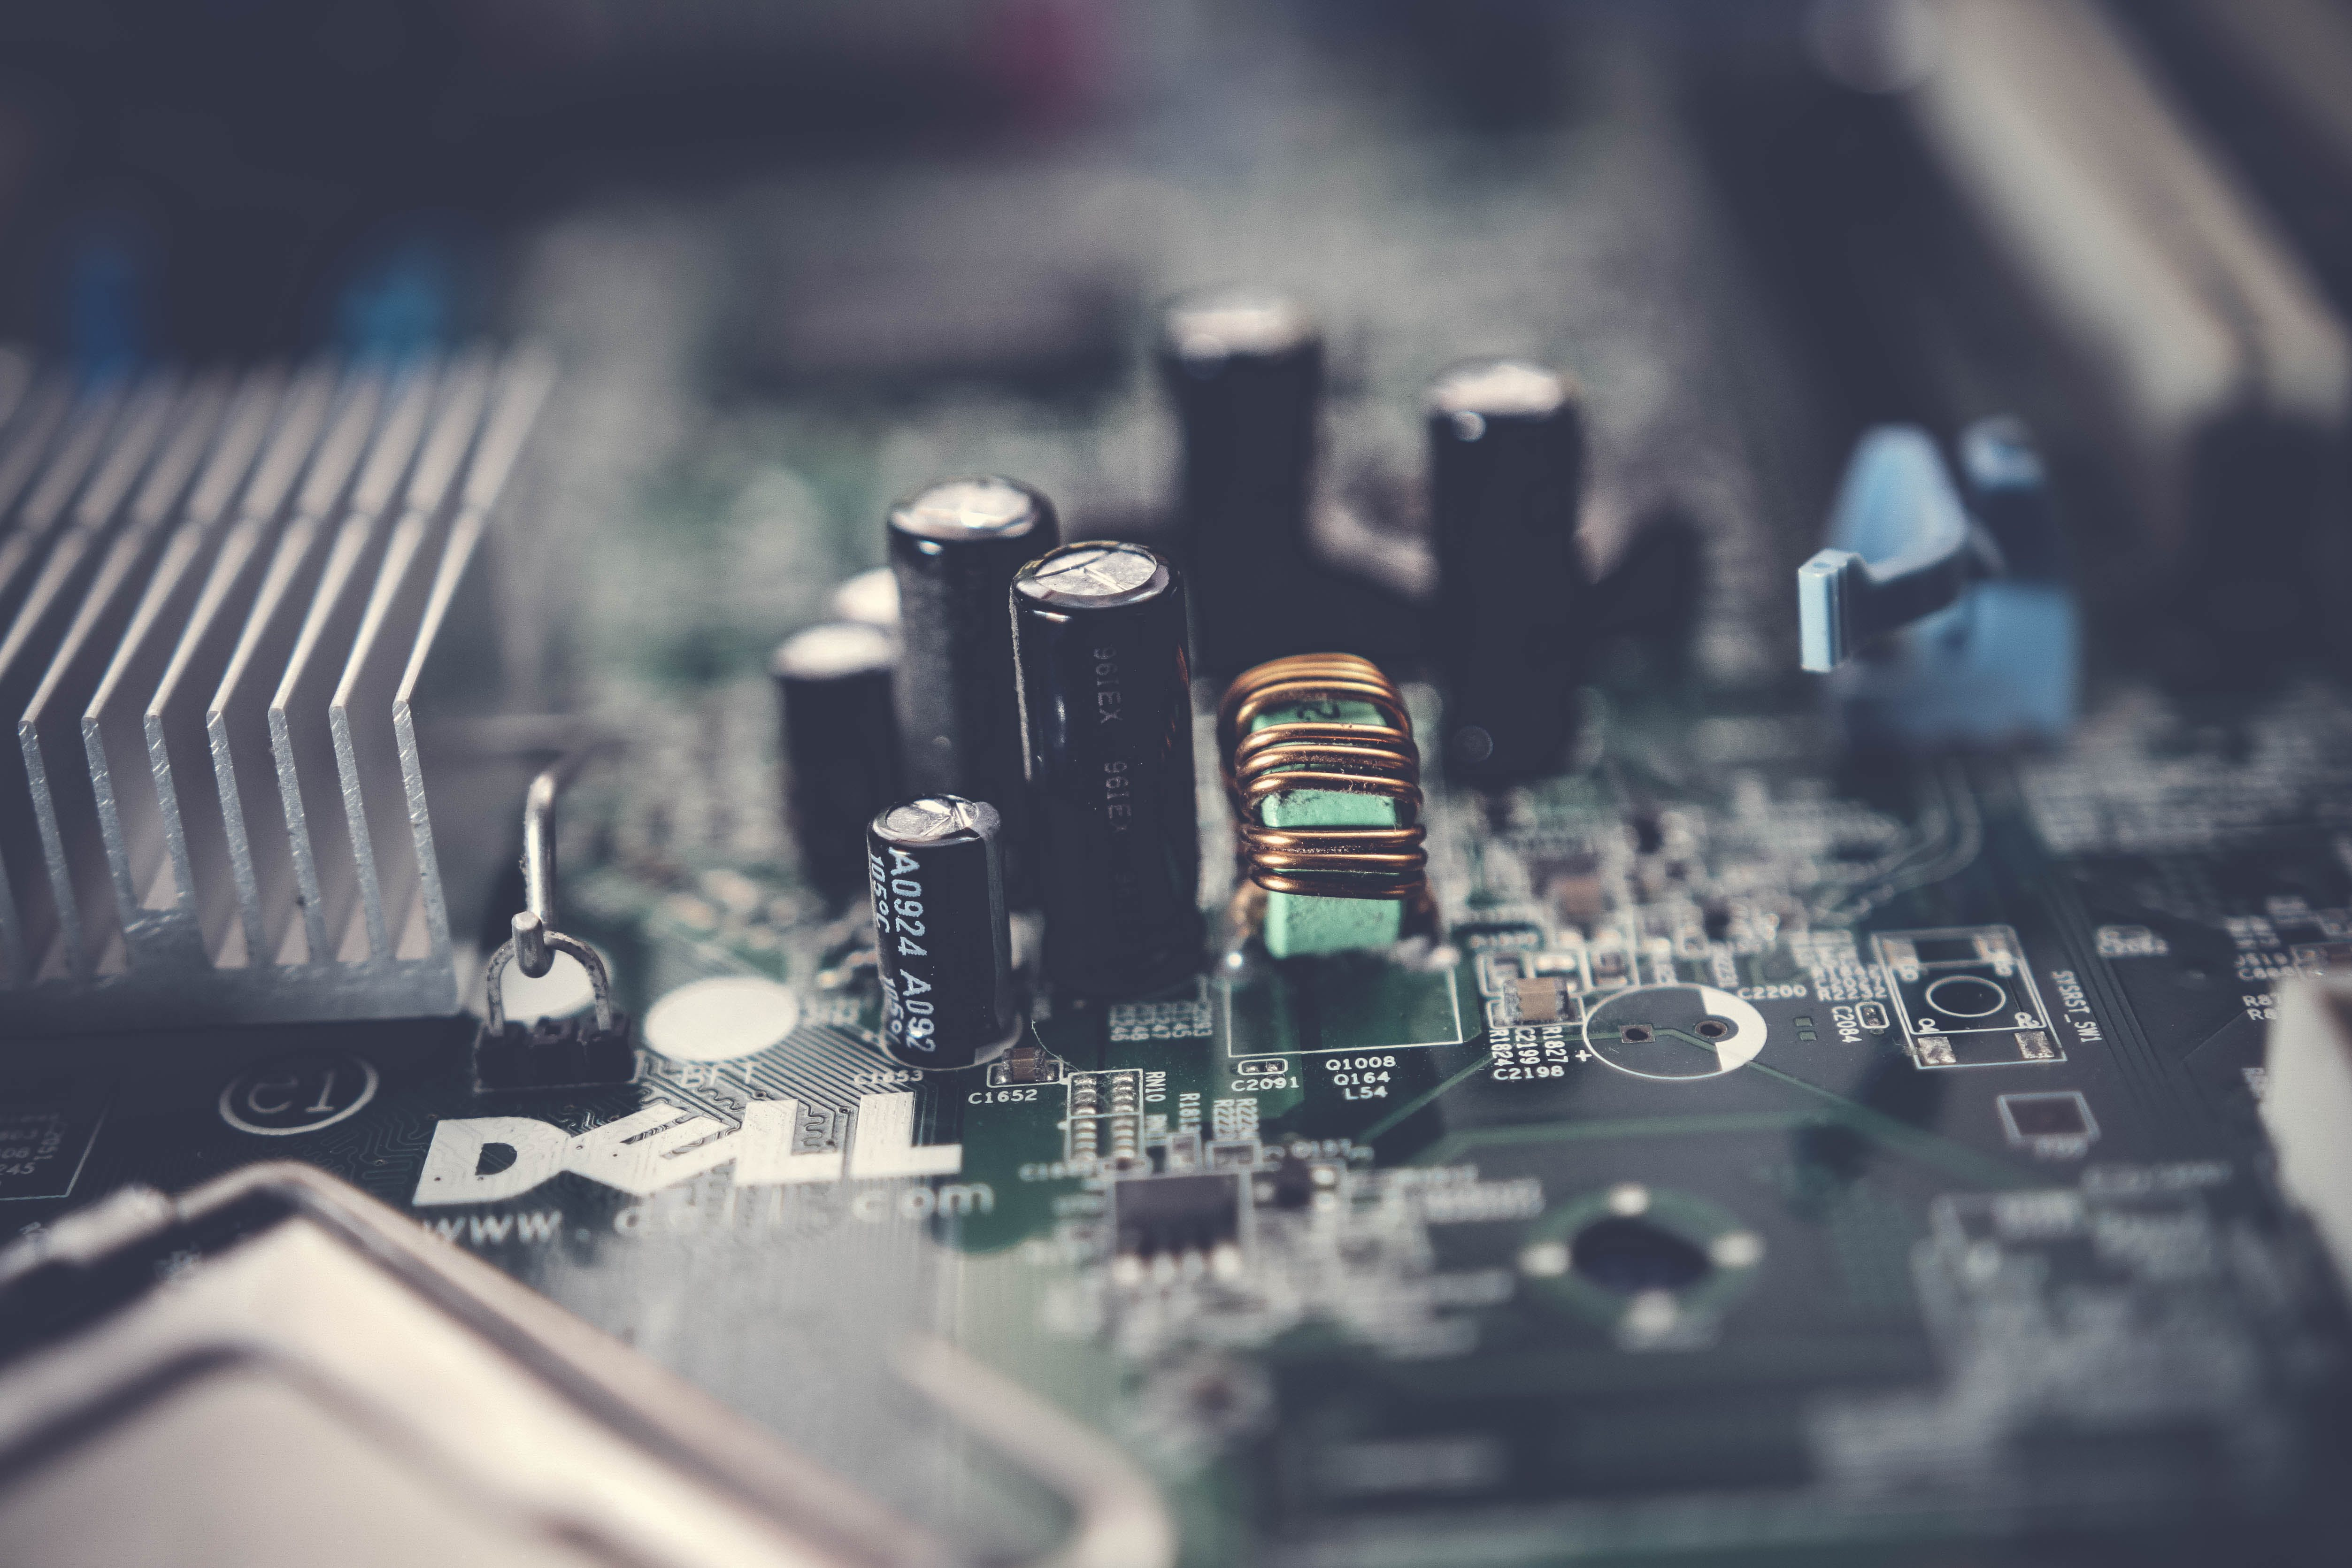 Selective Focus Photo of Dell Motherboard